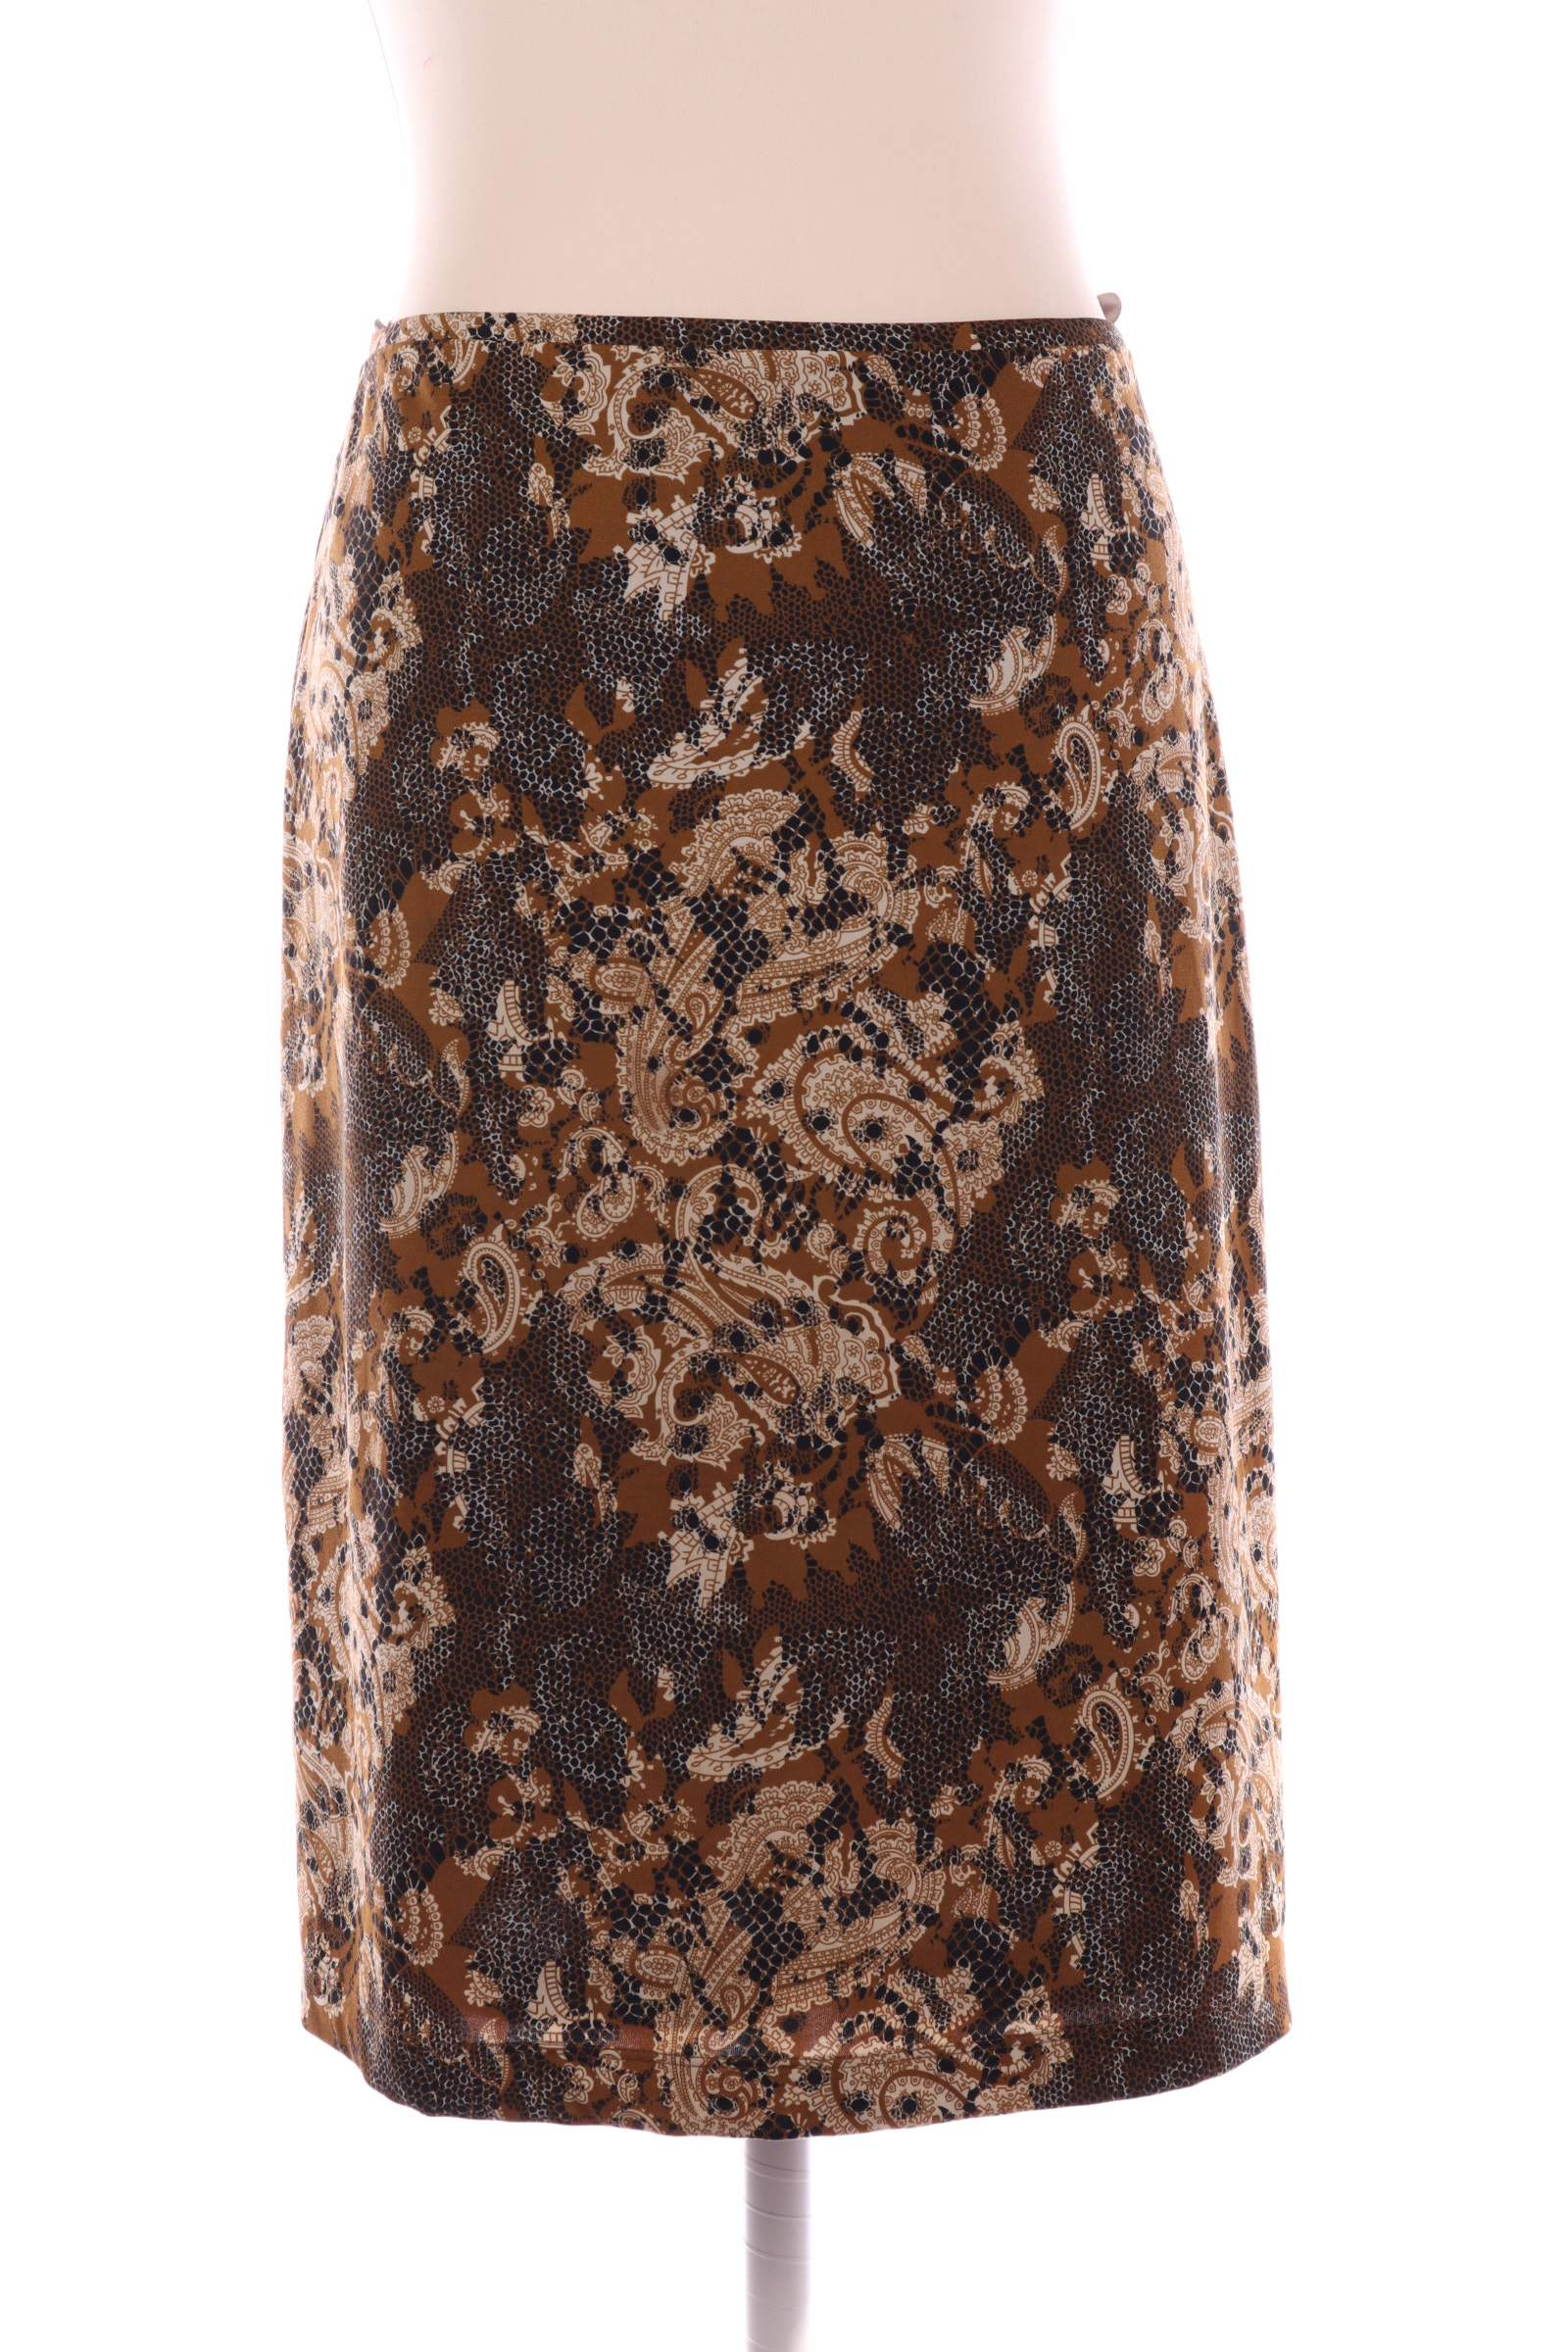 Mexx Brown Skirt - upty.store